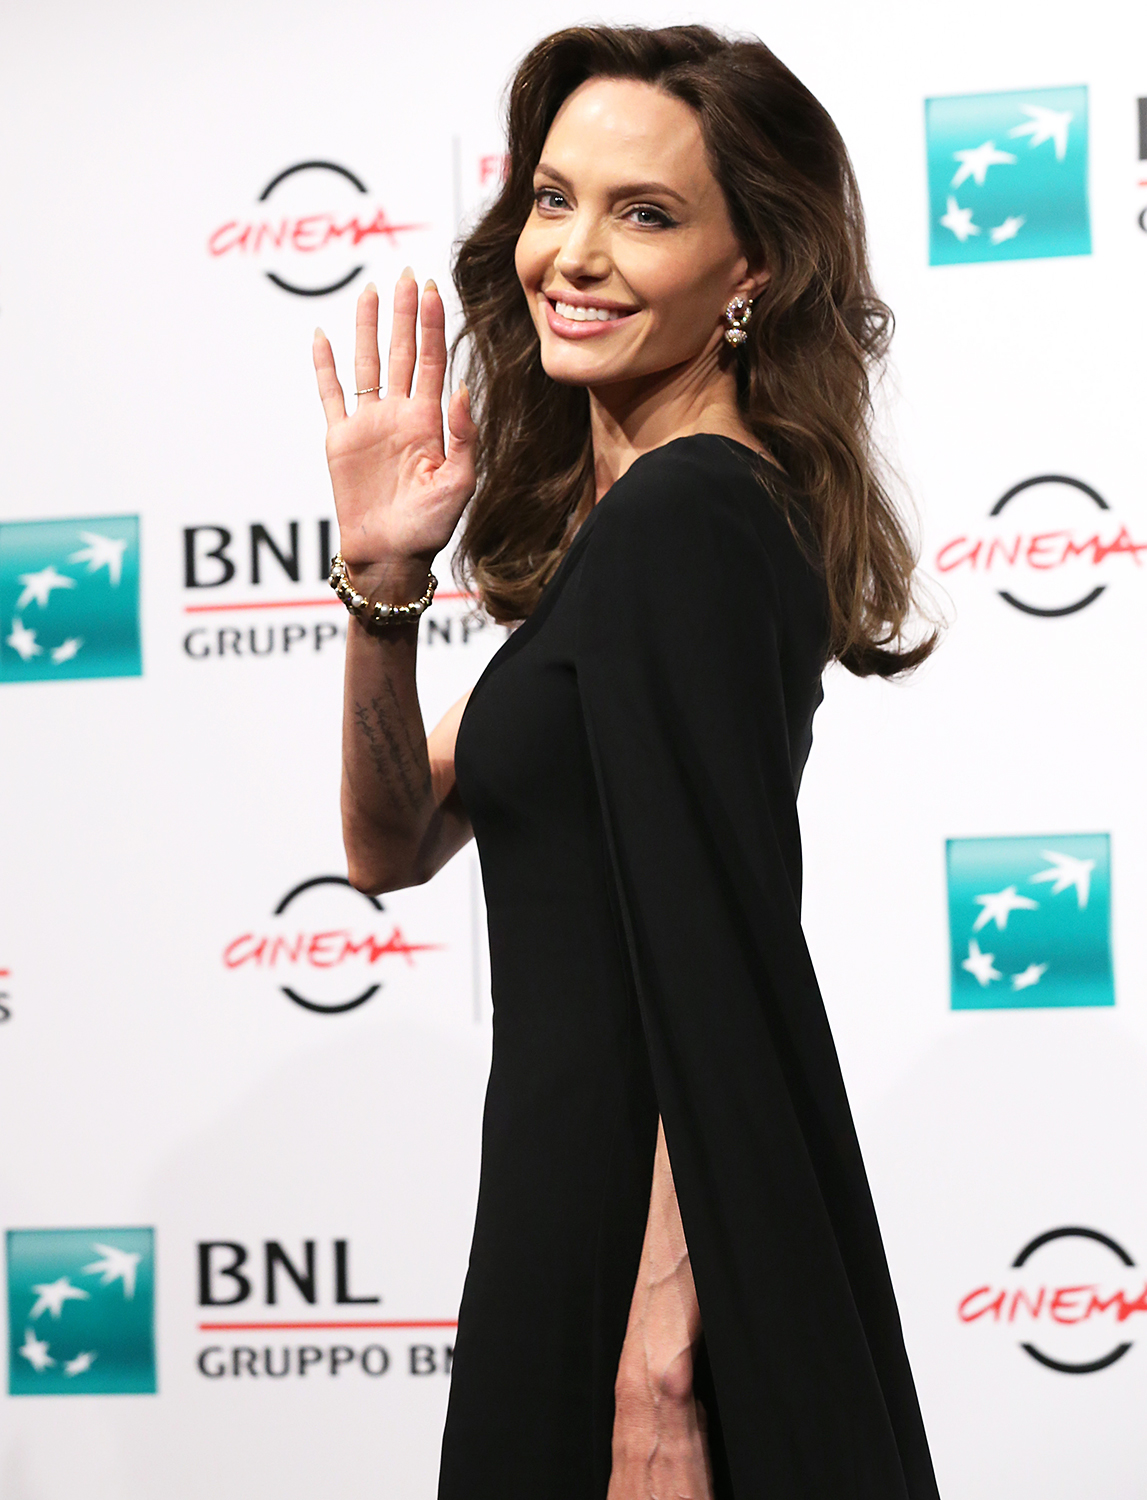 """Angelina Jolie attends the photocall of the movie """"Eternals"""" during the 16th Rome Film Fest 2021 on October 24, 2021 in Rome, Italy."""